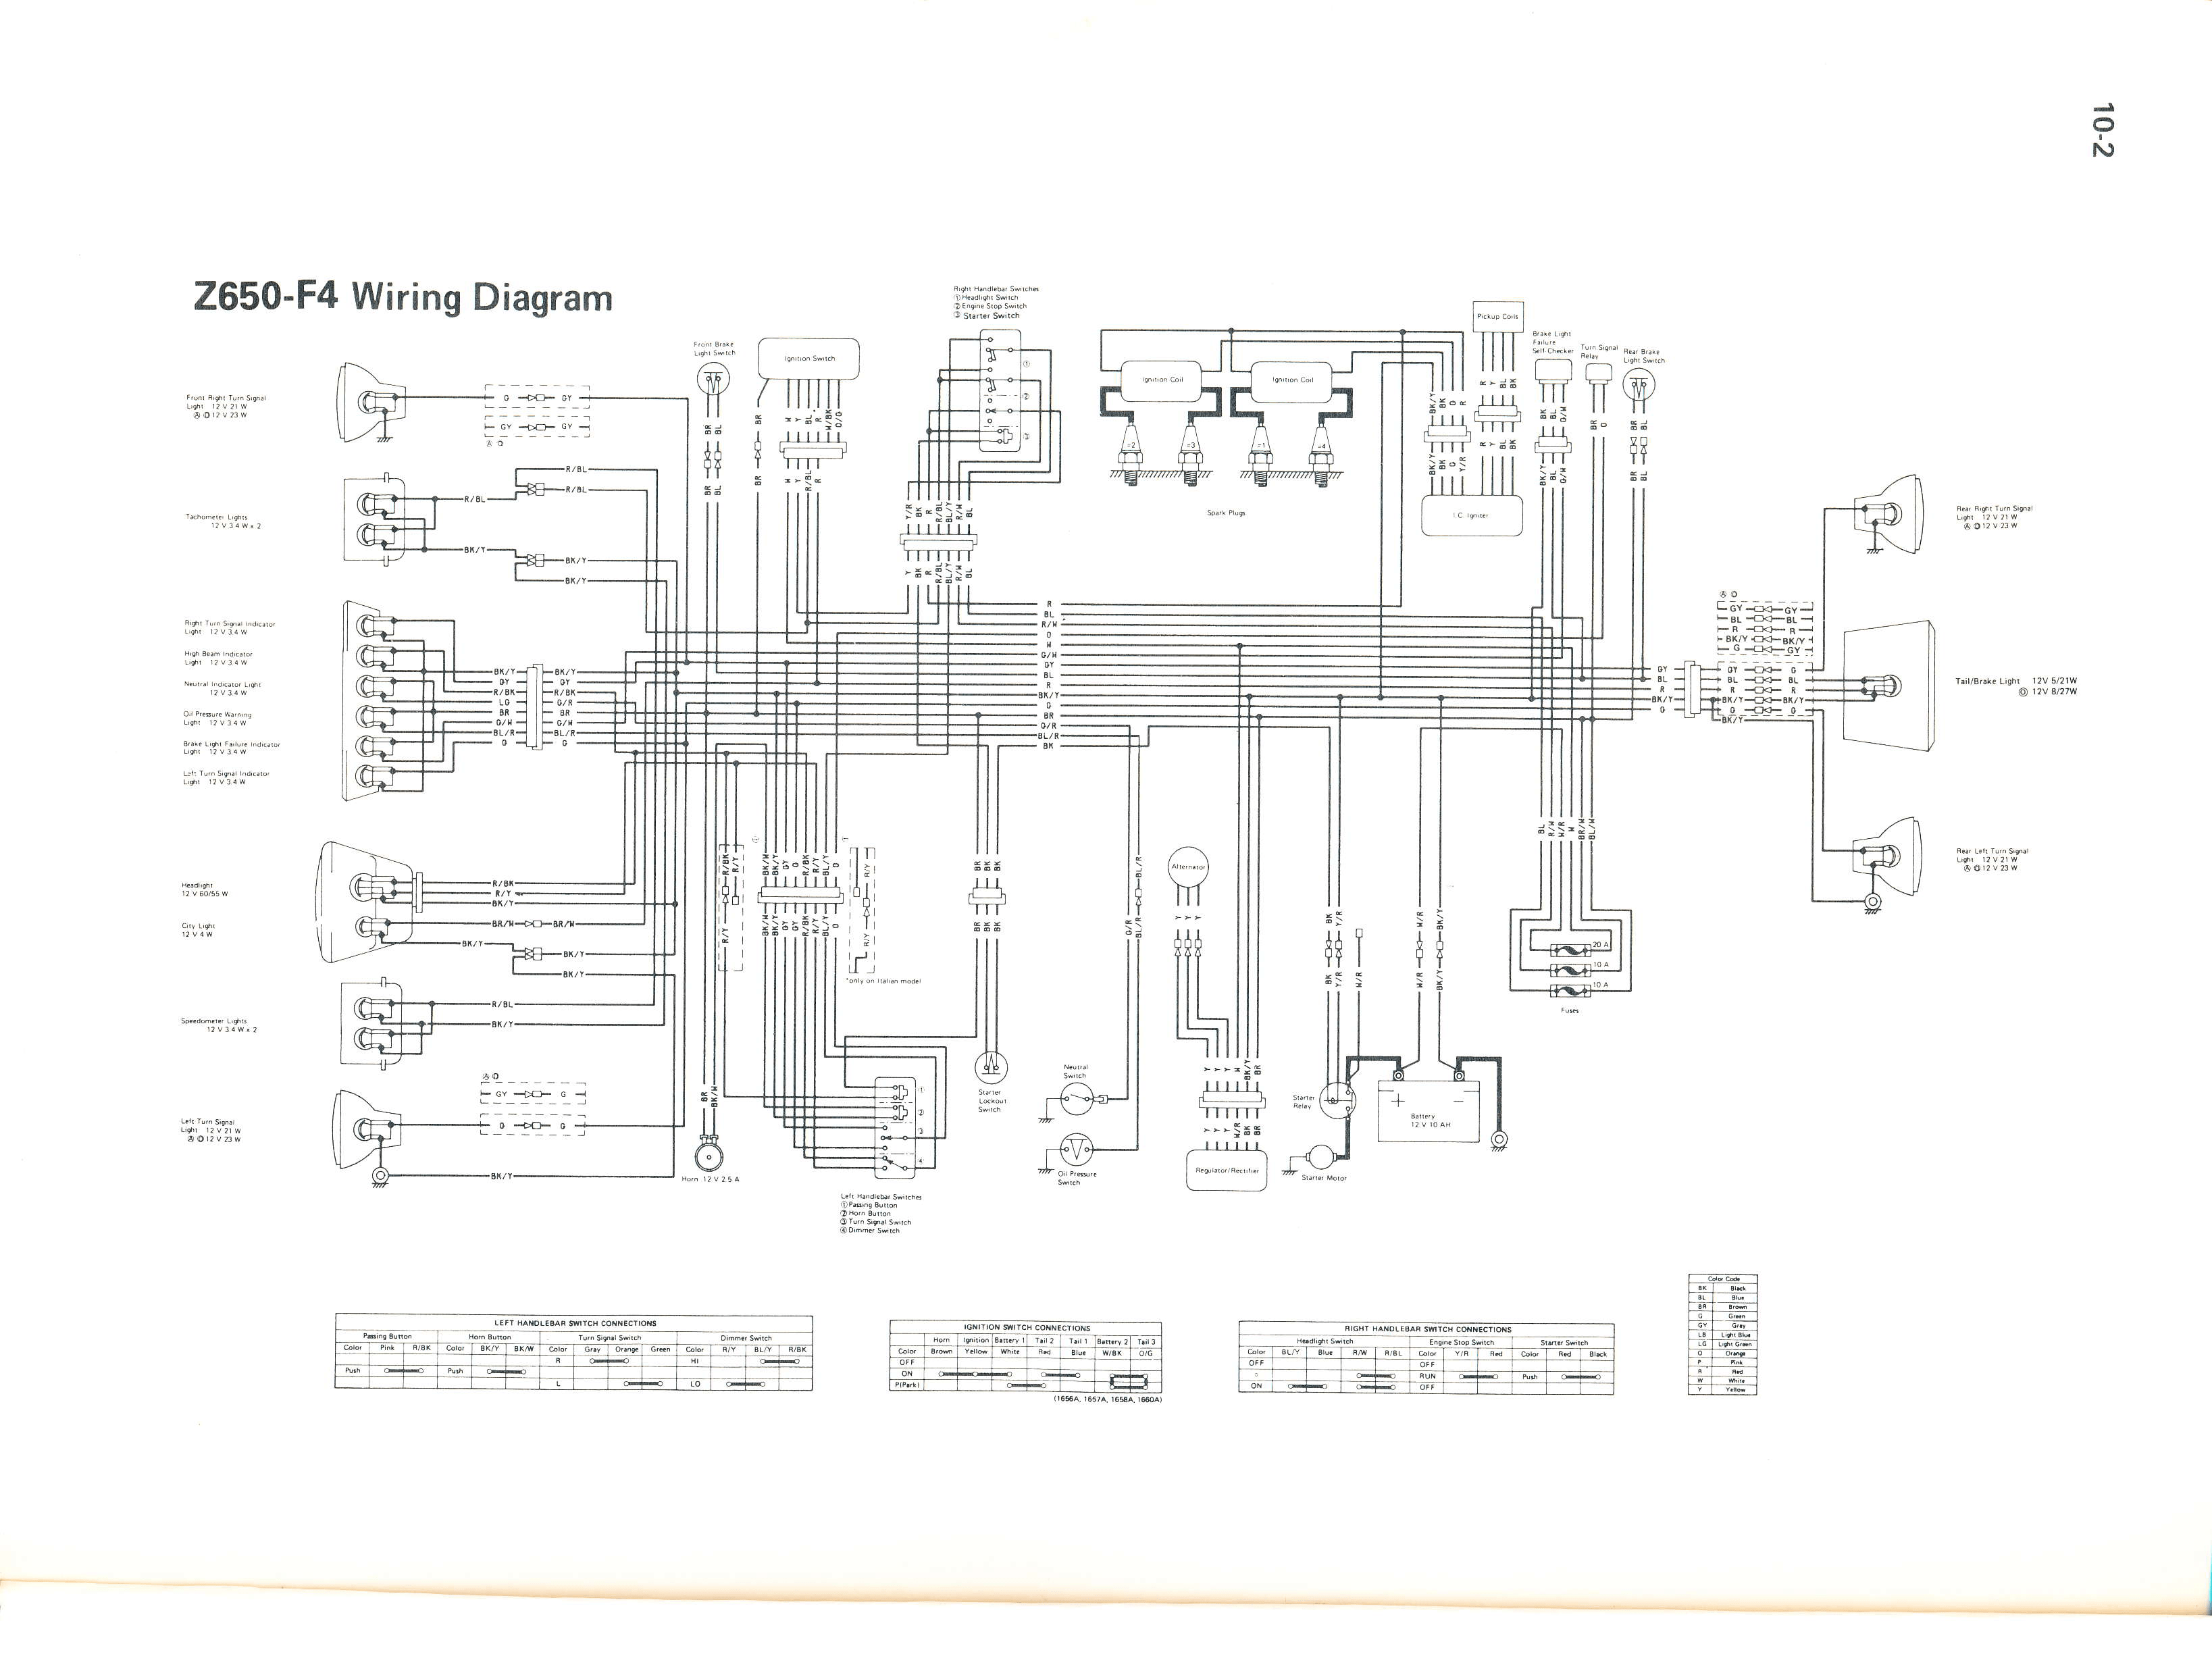 EPUB] 40 KZ40 WIRING DIAGRAM   finbar.playnovecento.it